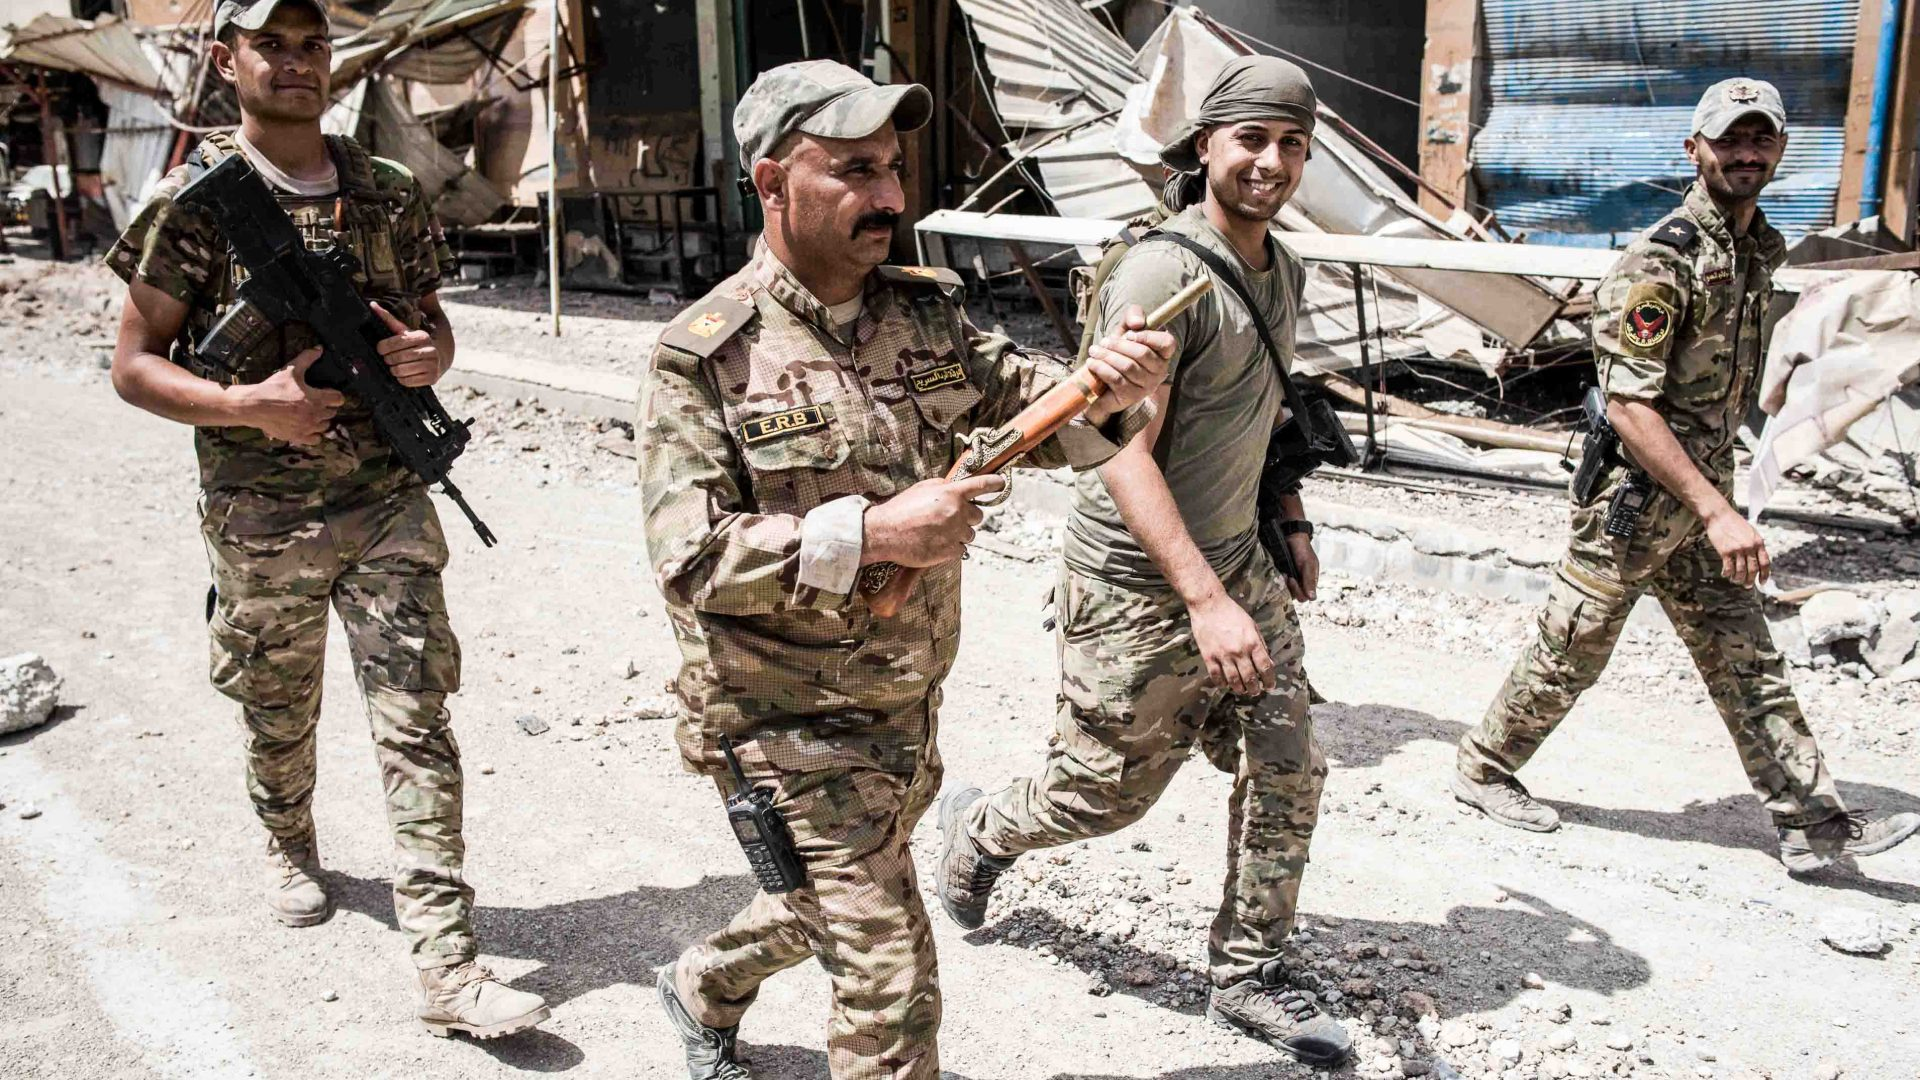 Major Hussein Wali of the Iraqi Emergency Response Division holding a toy gun as he walks through west Mosul with his men, May 2017.